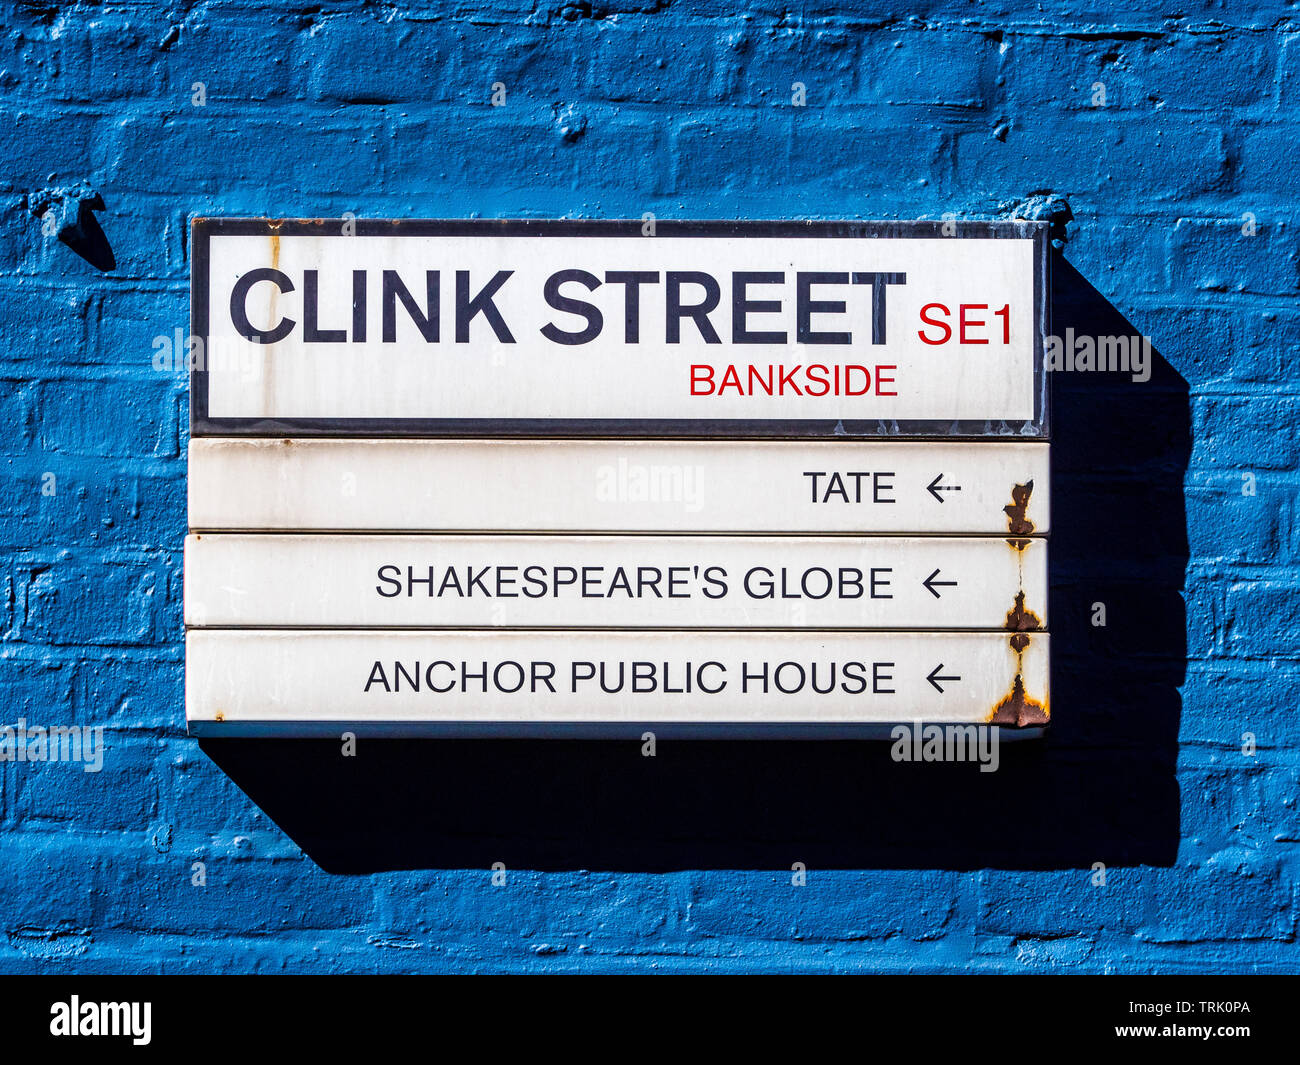 Clink Street Sign, Clink Street is a historic street on Bankside on London's South Bank. Historic location of the notorious Clink Prison - Stock Image